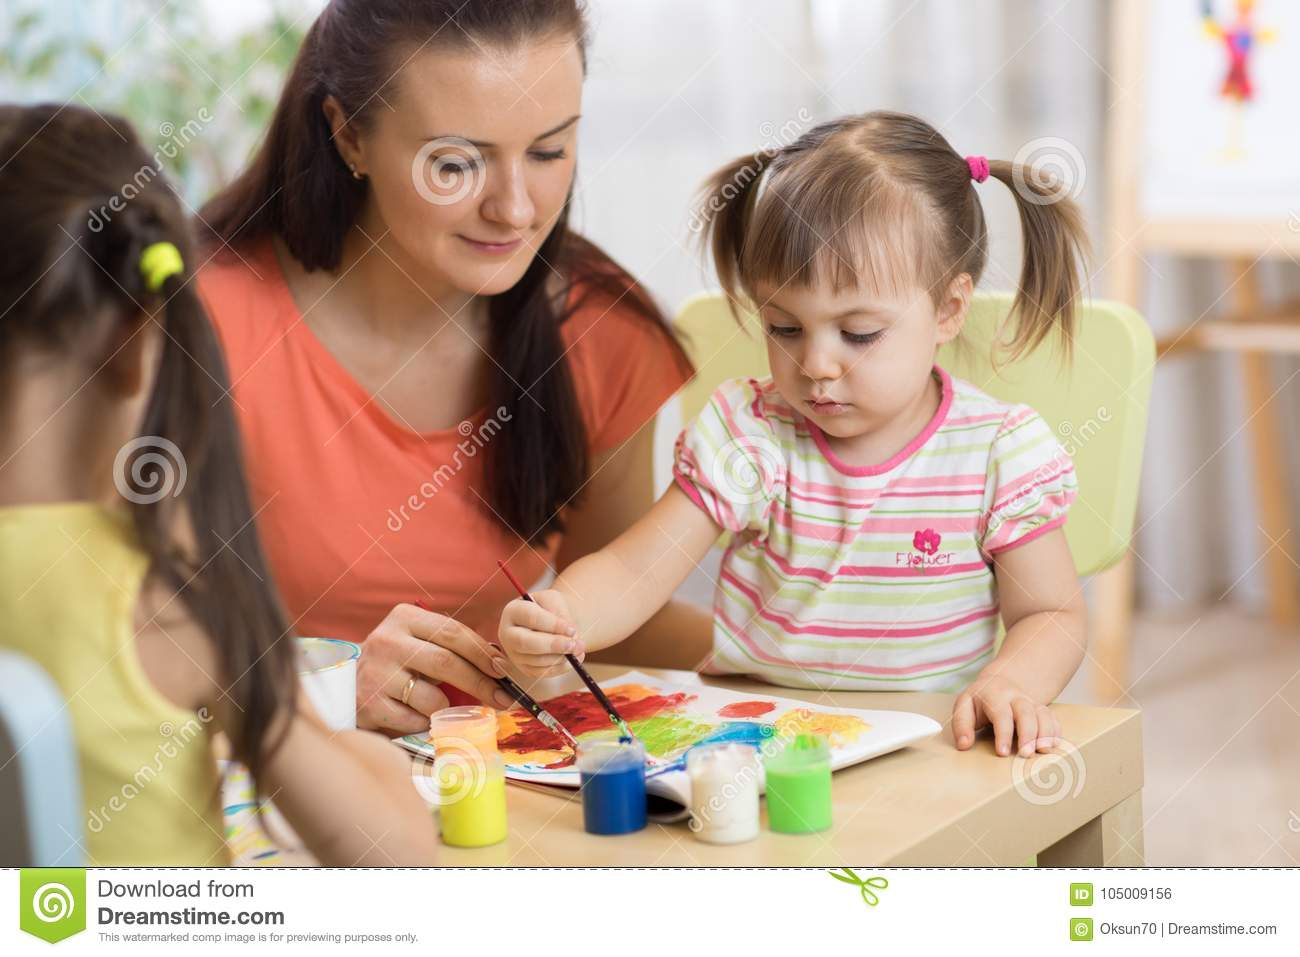 Children painting in preschool. Teacher helps by little girl.